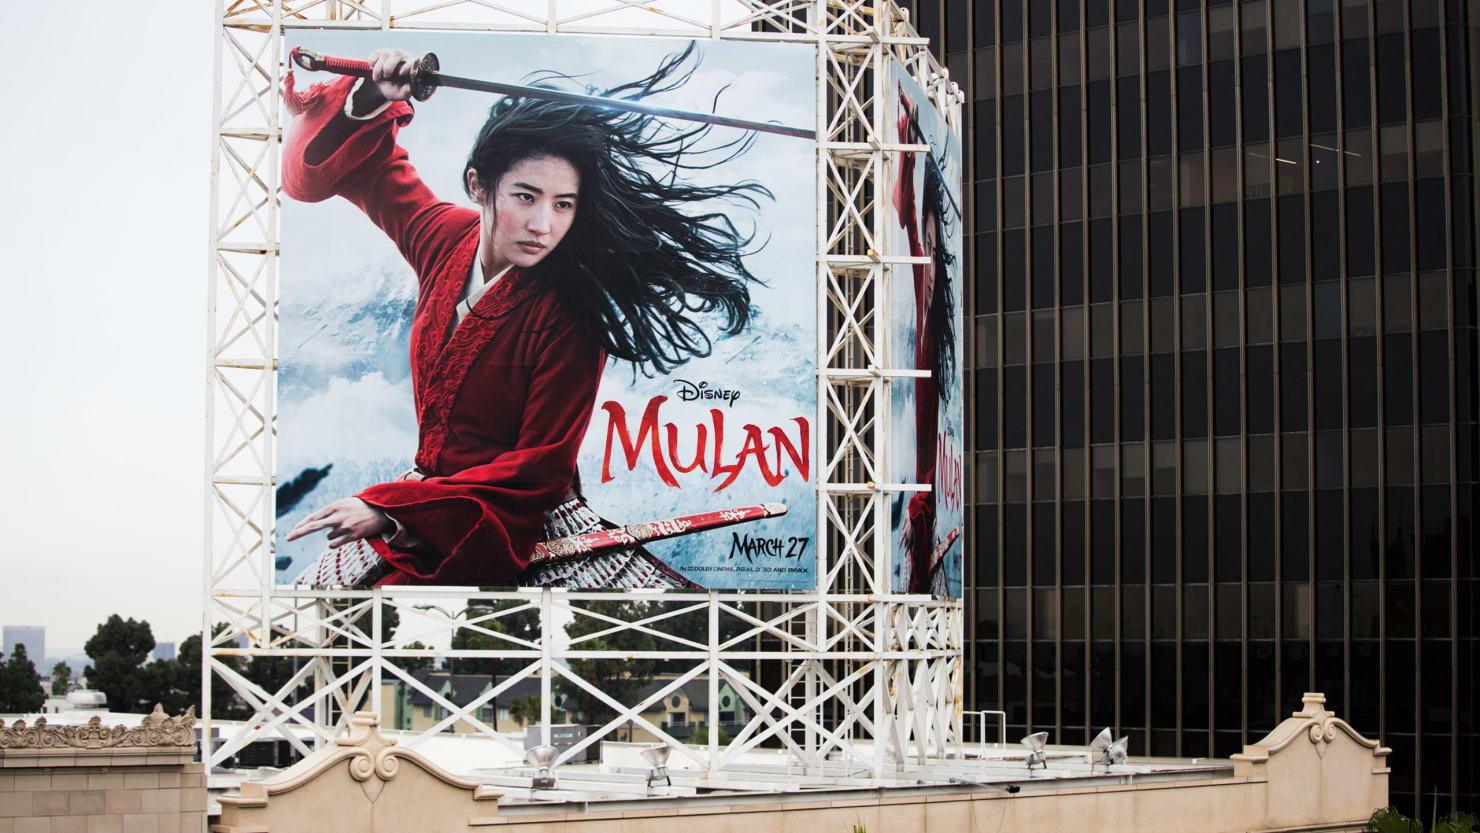 'Mulan' Apparently Filmed in a Province Known for Human Rights Abuses